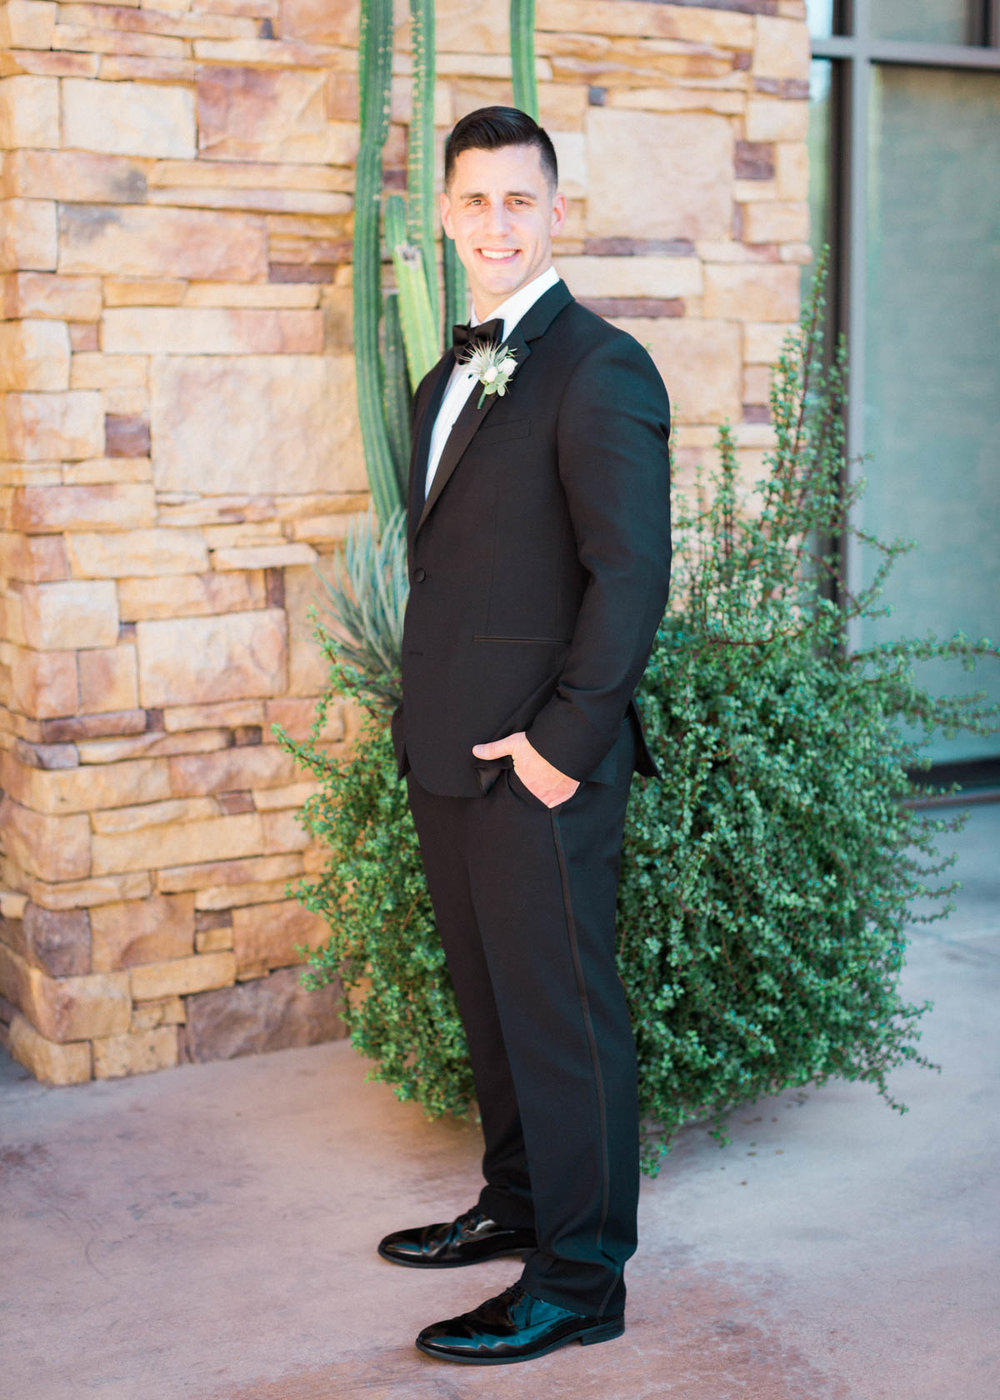 Handsome groom in black tuxedo captured by Tucson Wedding Photographers Betsy & John